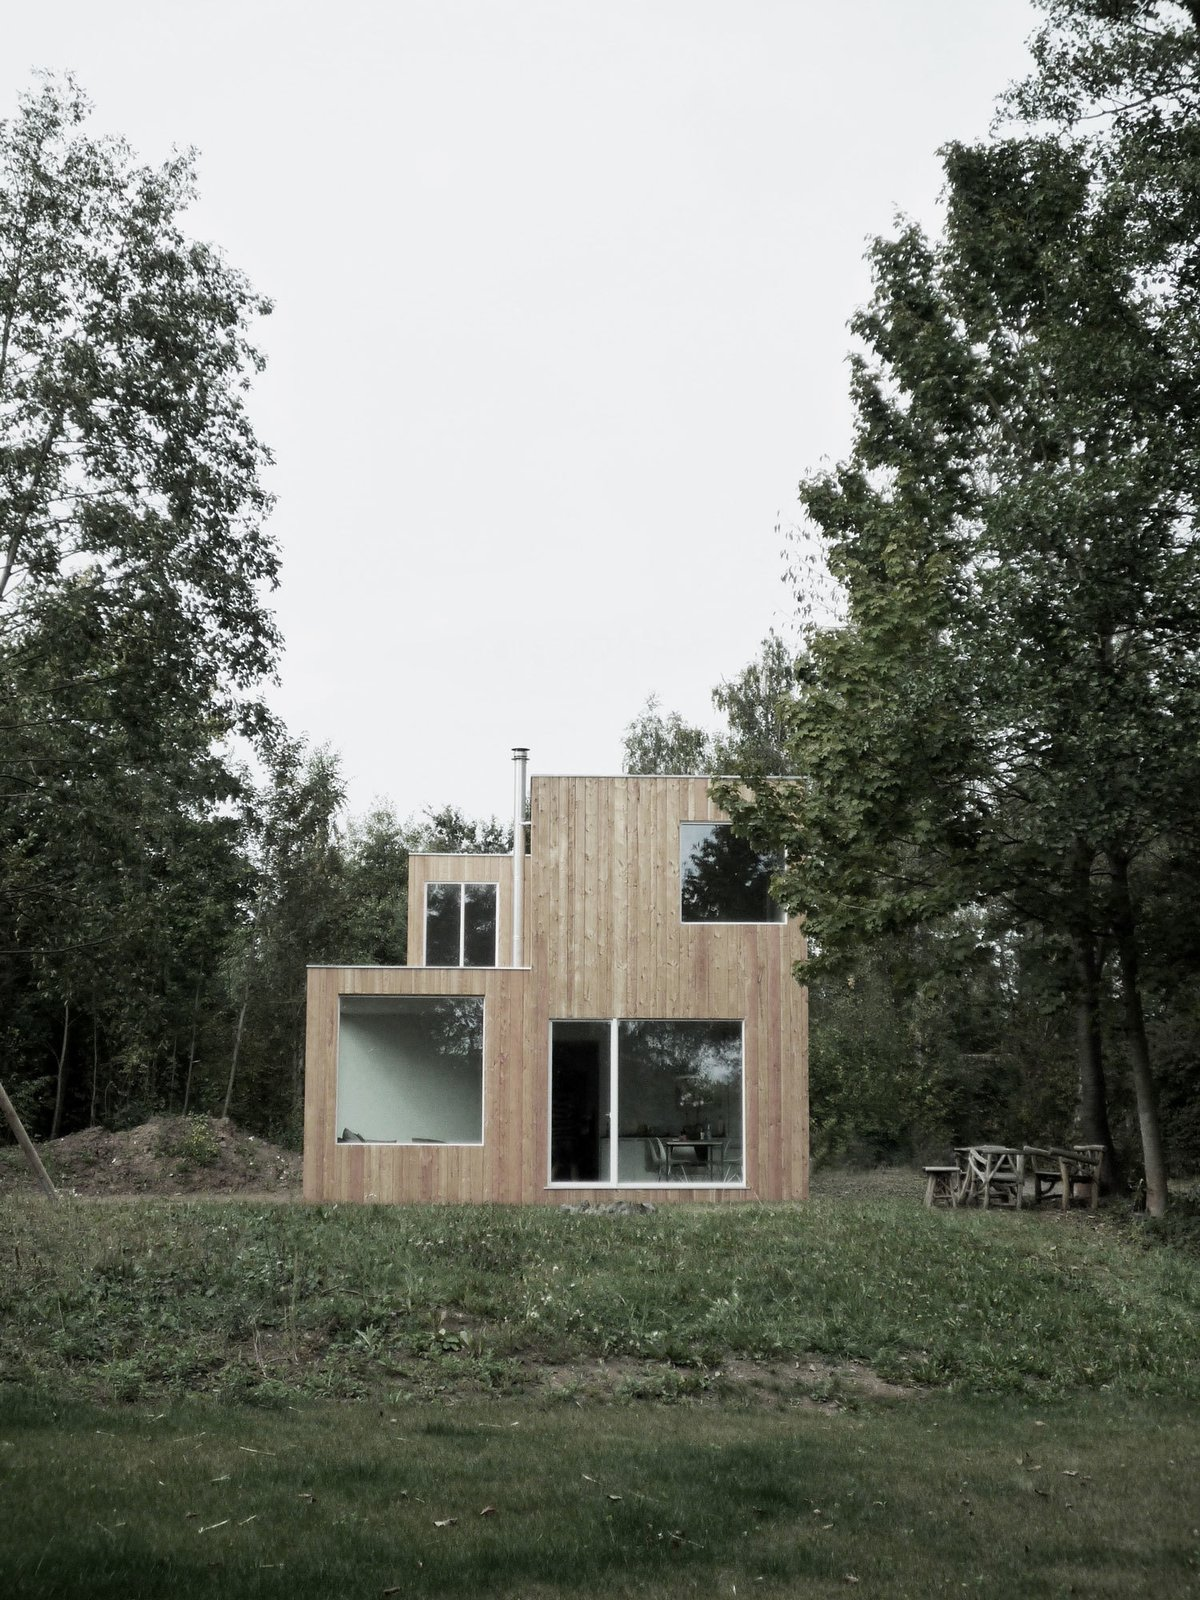 In Hungen, a lakeside town, regulations require homes to occupy a footprint of no more than 538 square feet, and be only one story tall. NKBAK worked around these limitations by designing a modern home with only a partial second story.  Cabins & Hideouts